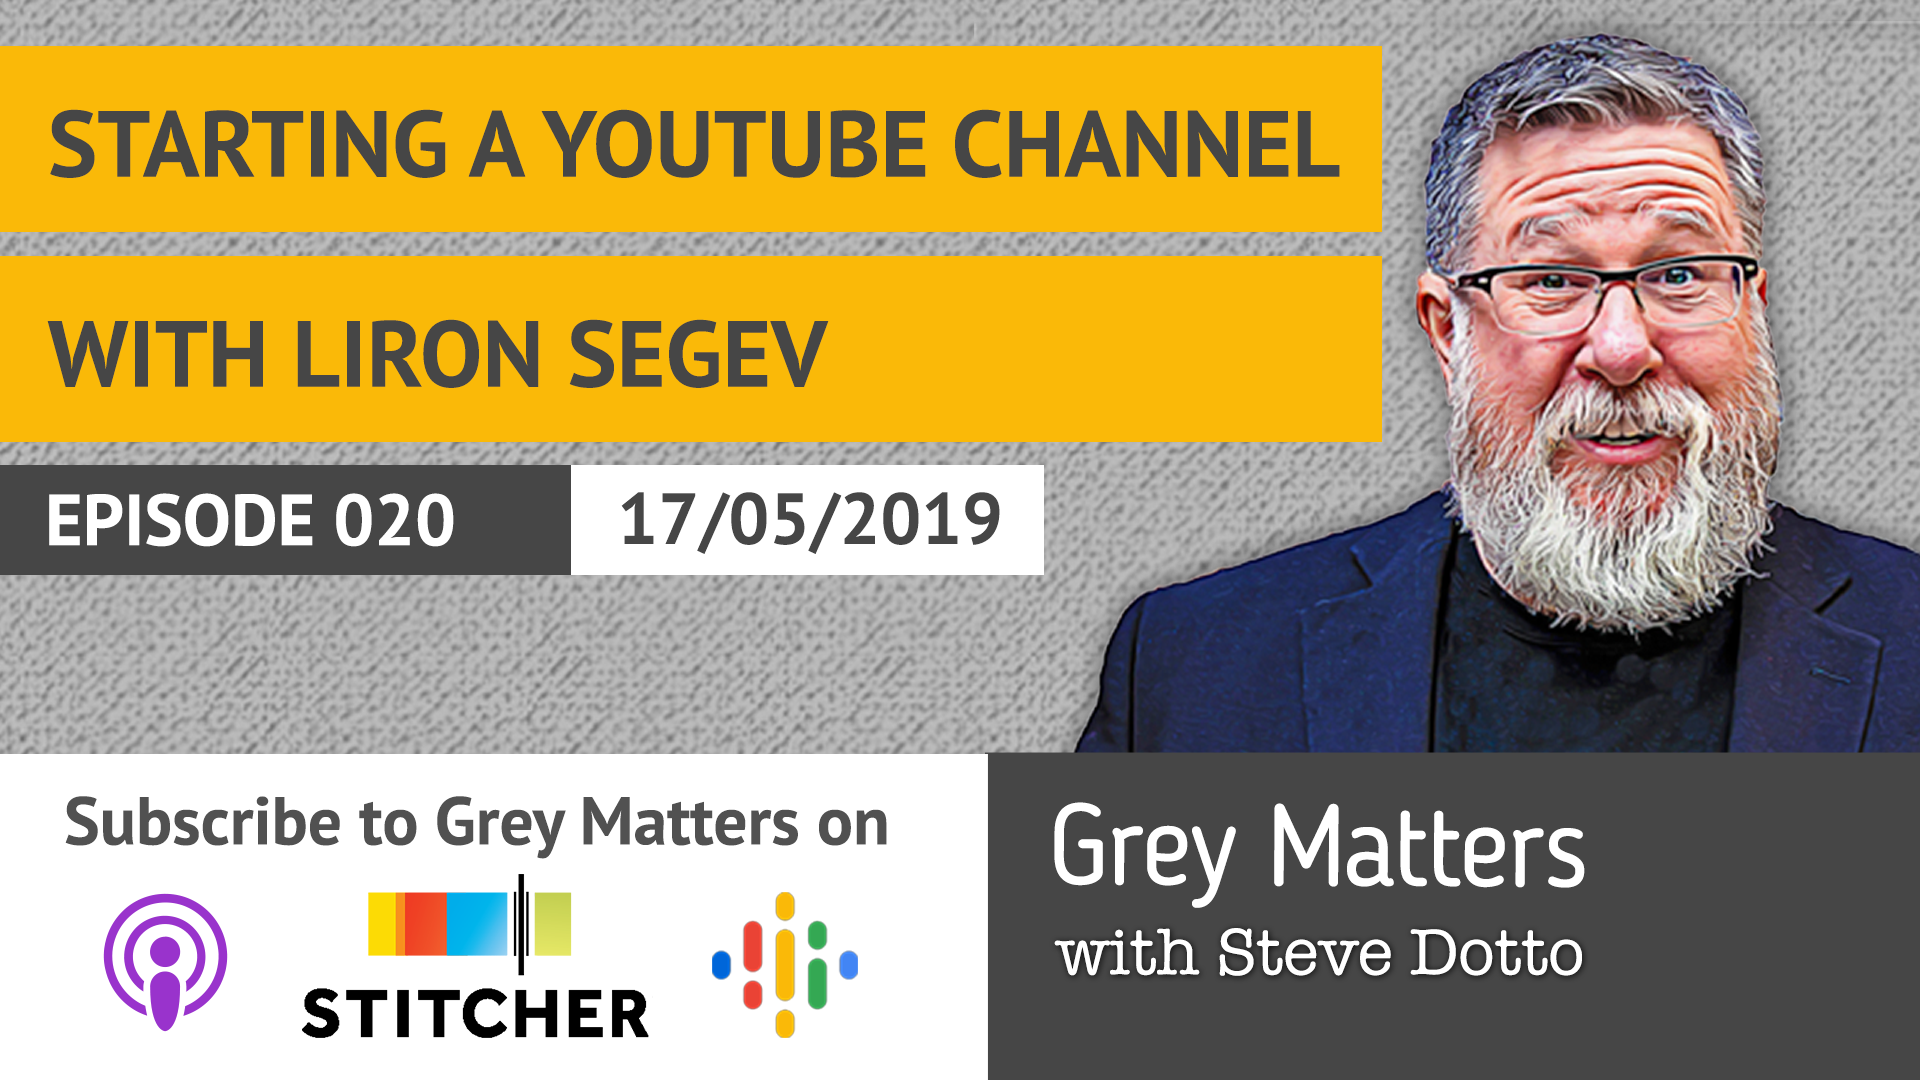 How to Start a YouTube Channel (featuring Liron Segev) Title (SEO Title): How to Start a YouTube Channel (featuring Liron Segev)